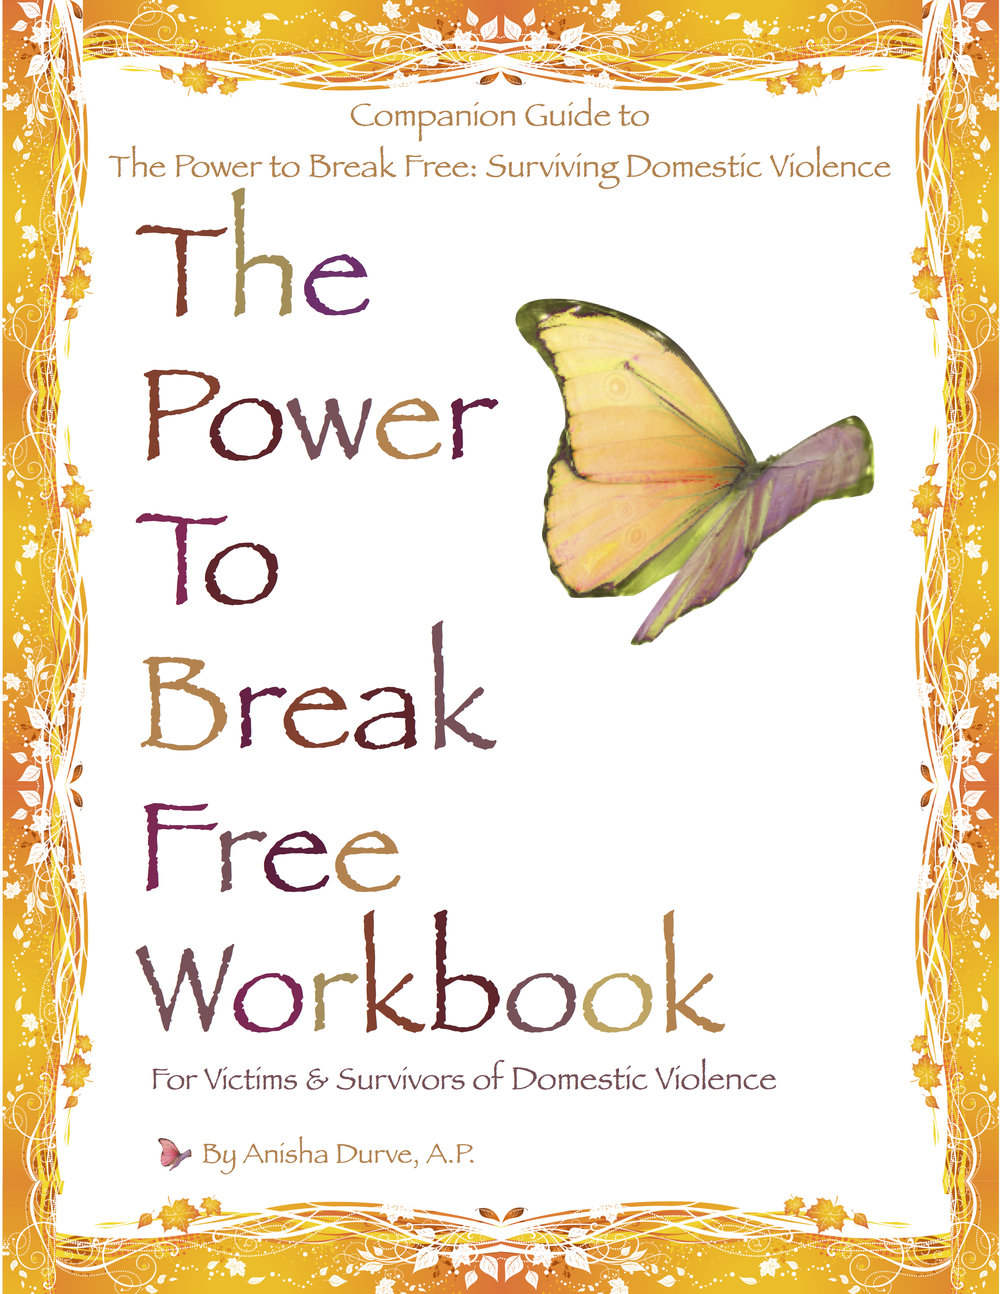 PTBF workbook cover.jpg